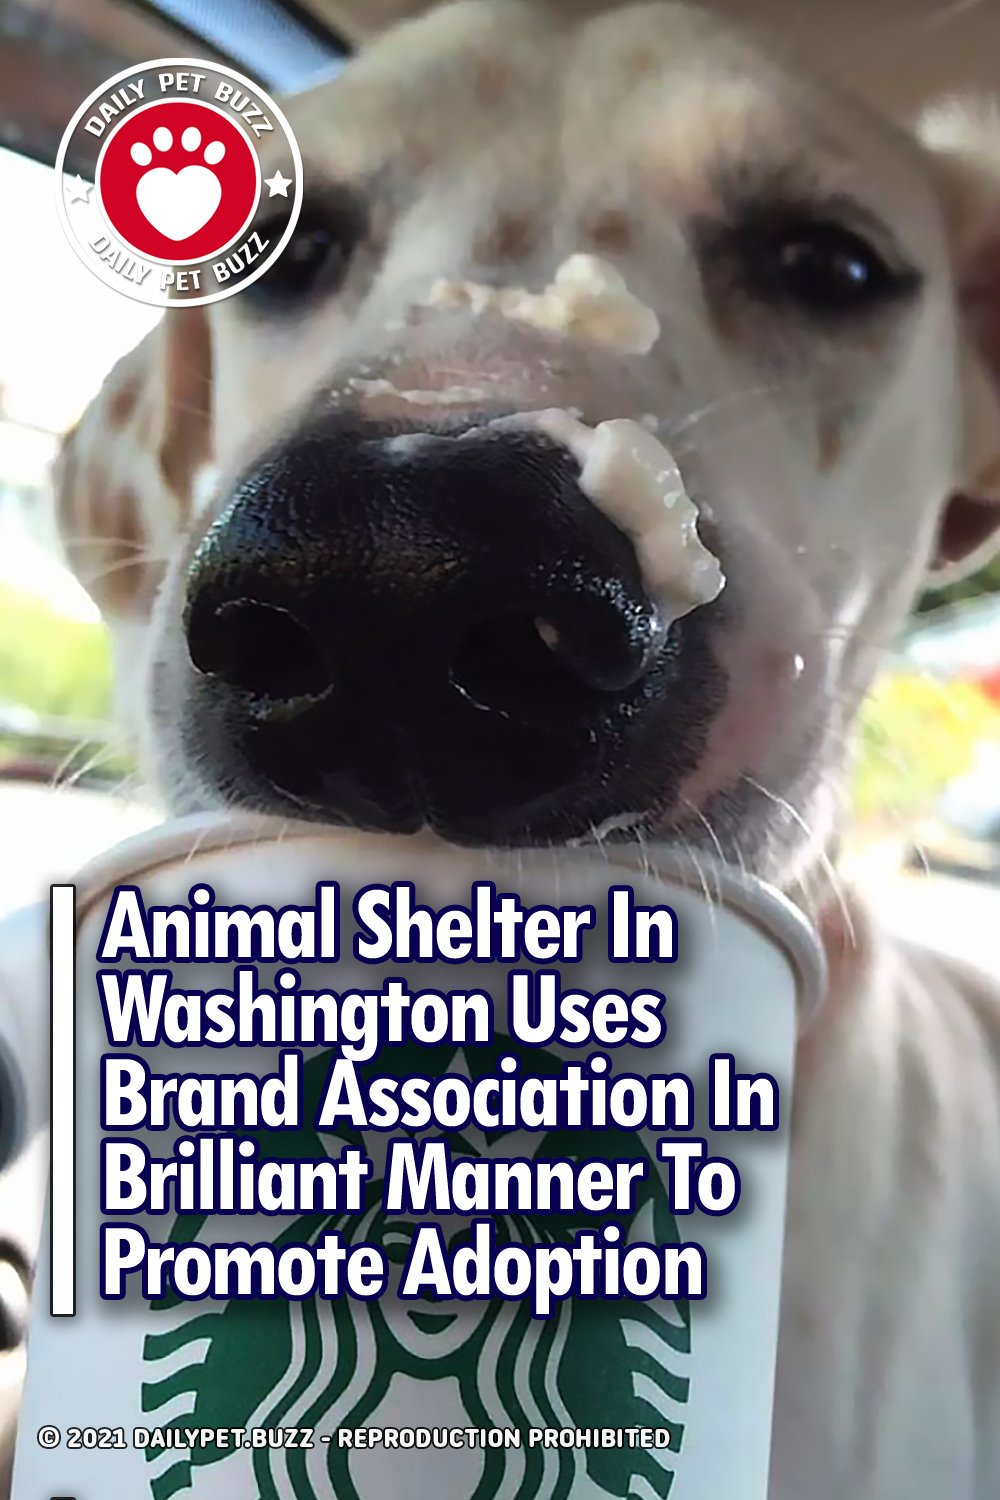 Animal Shelter In Washington Uses Brand Association In Brilliant Manner To Promote Adoption